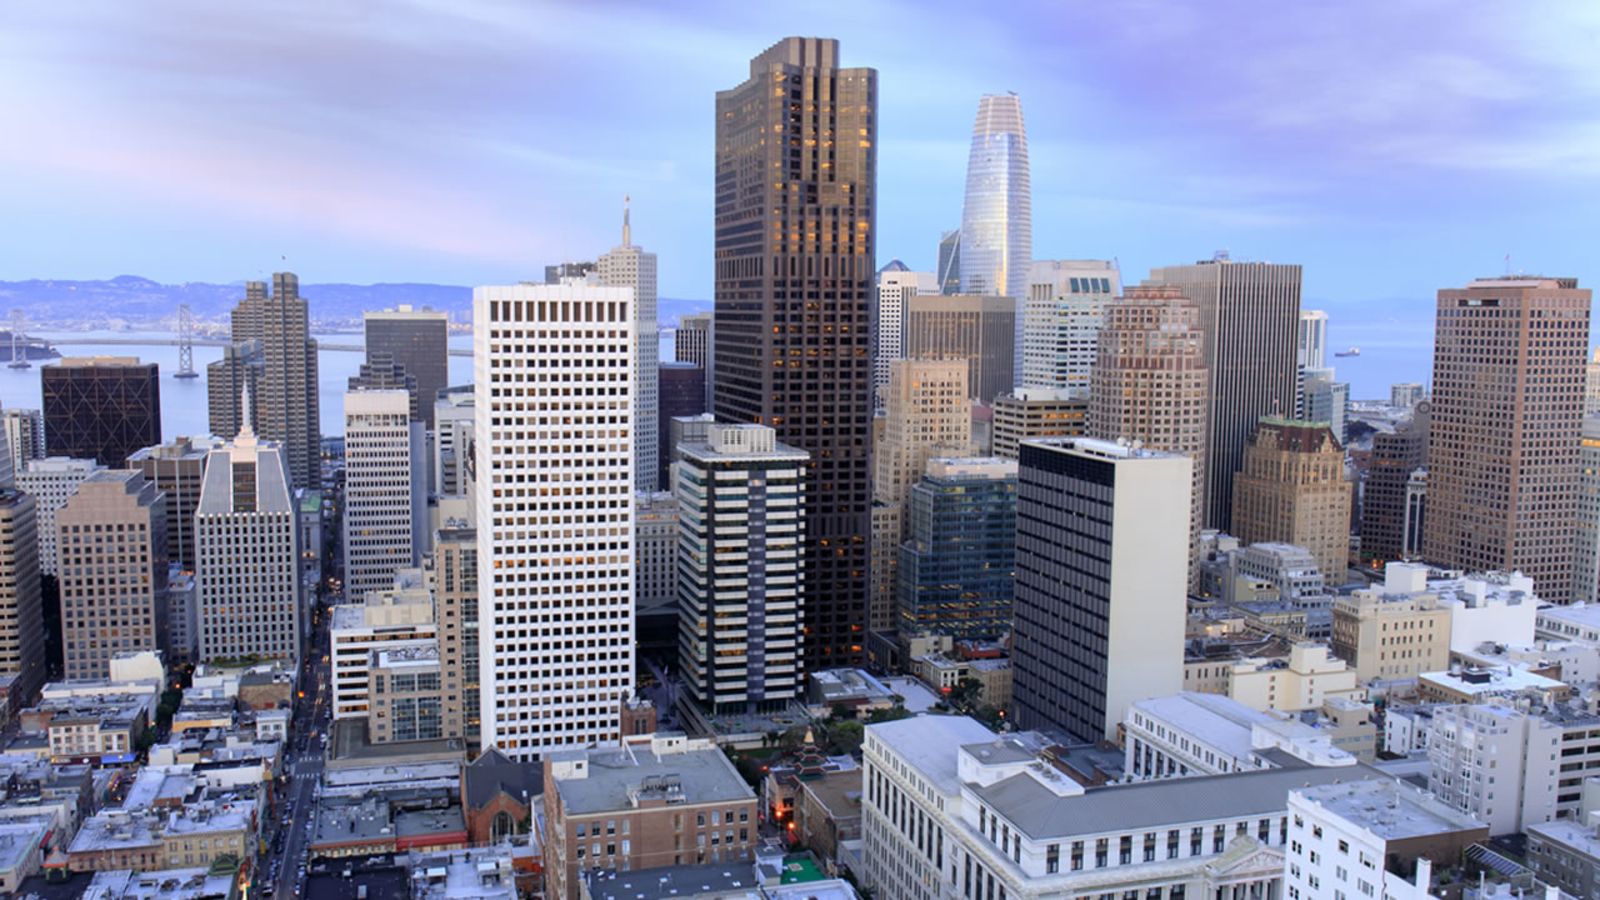 Report: San Francisco has highest salaries in world